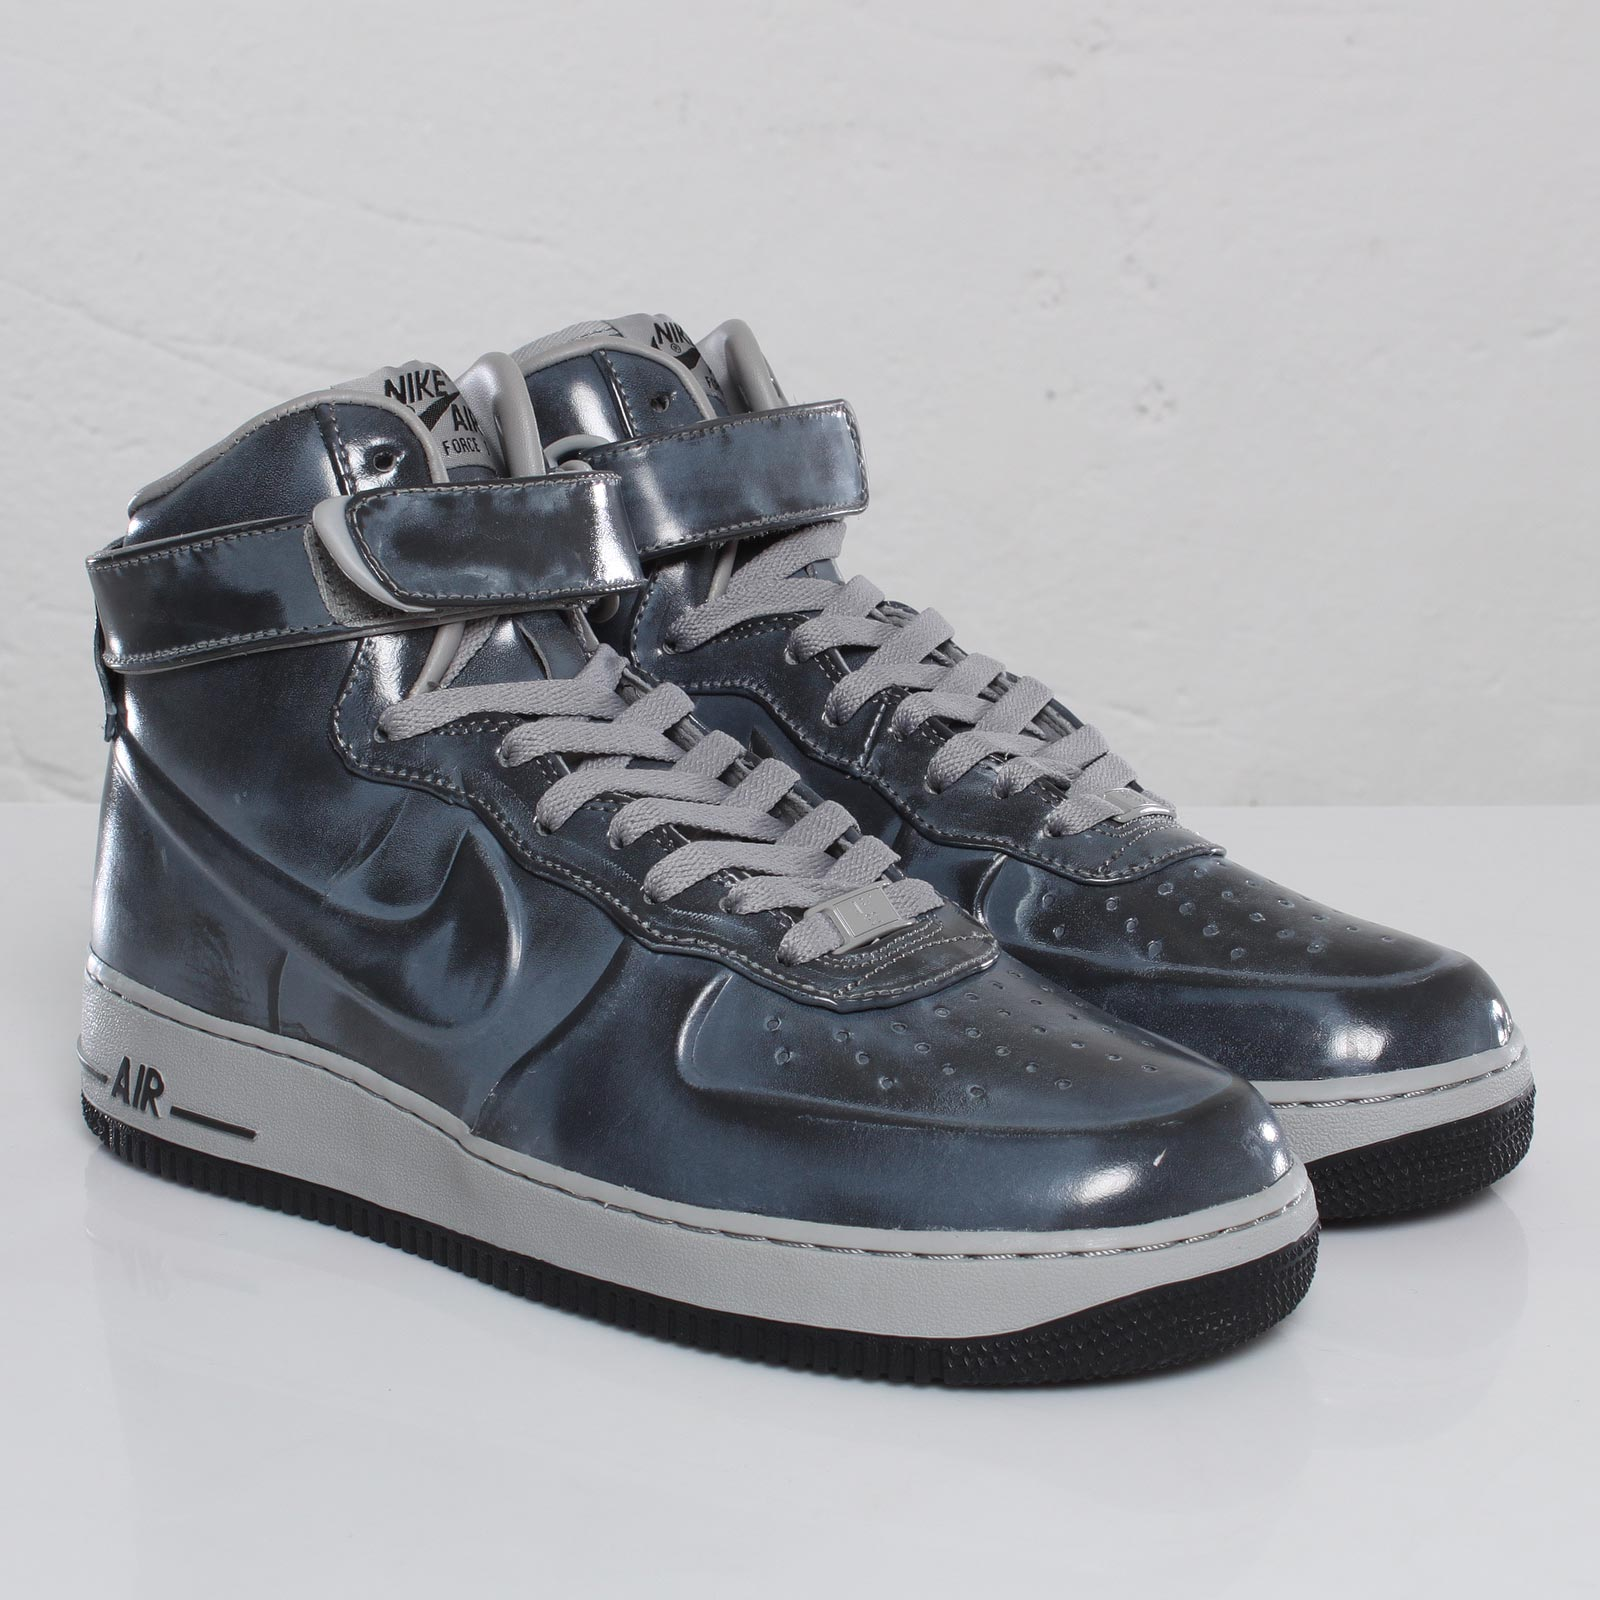 Nike Air Force 1 High VT Supreme - 102858 - Sneakersnstuff ...